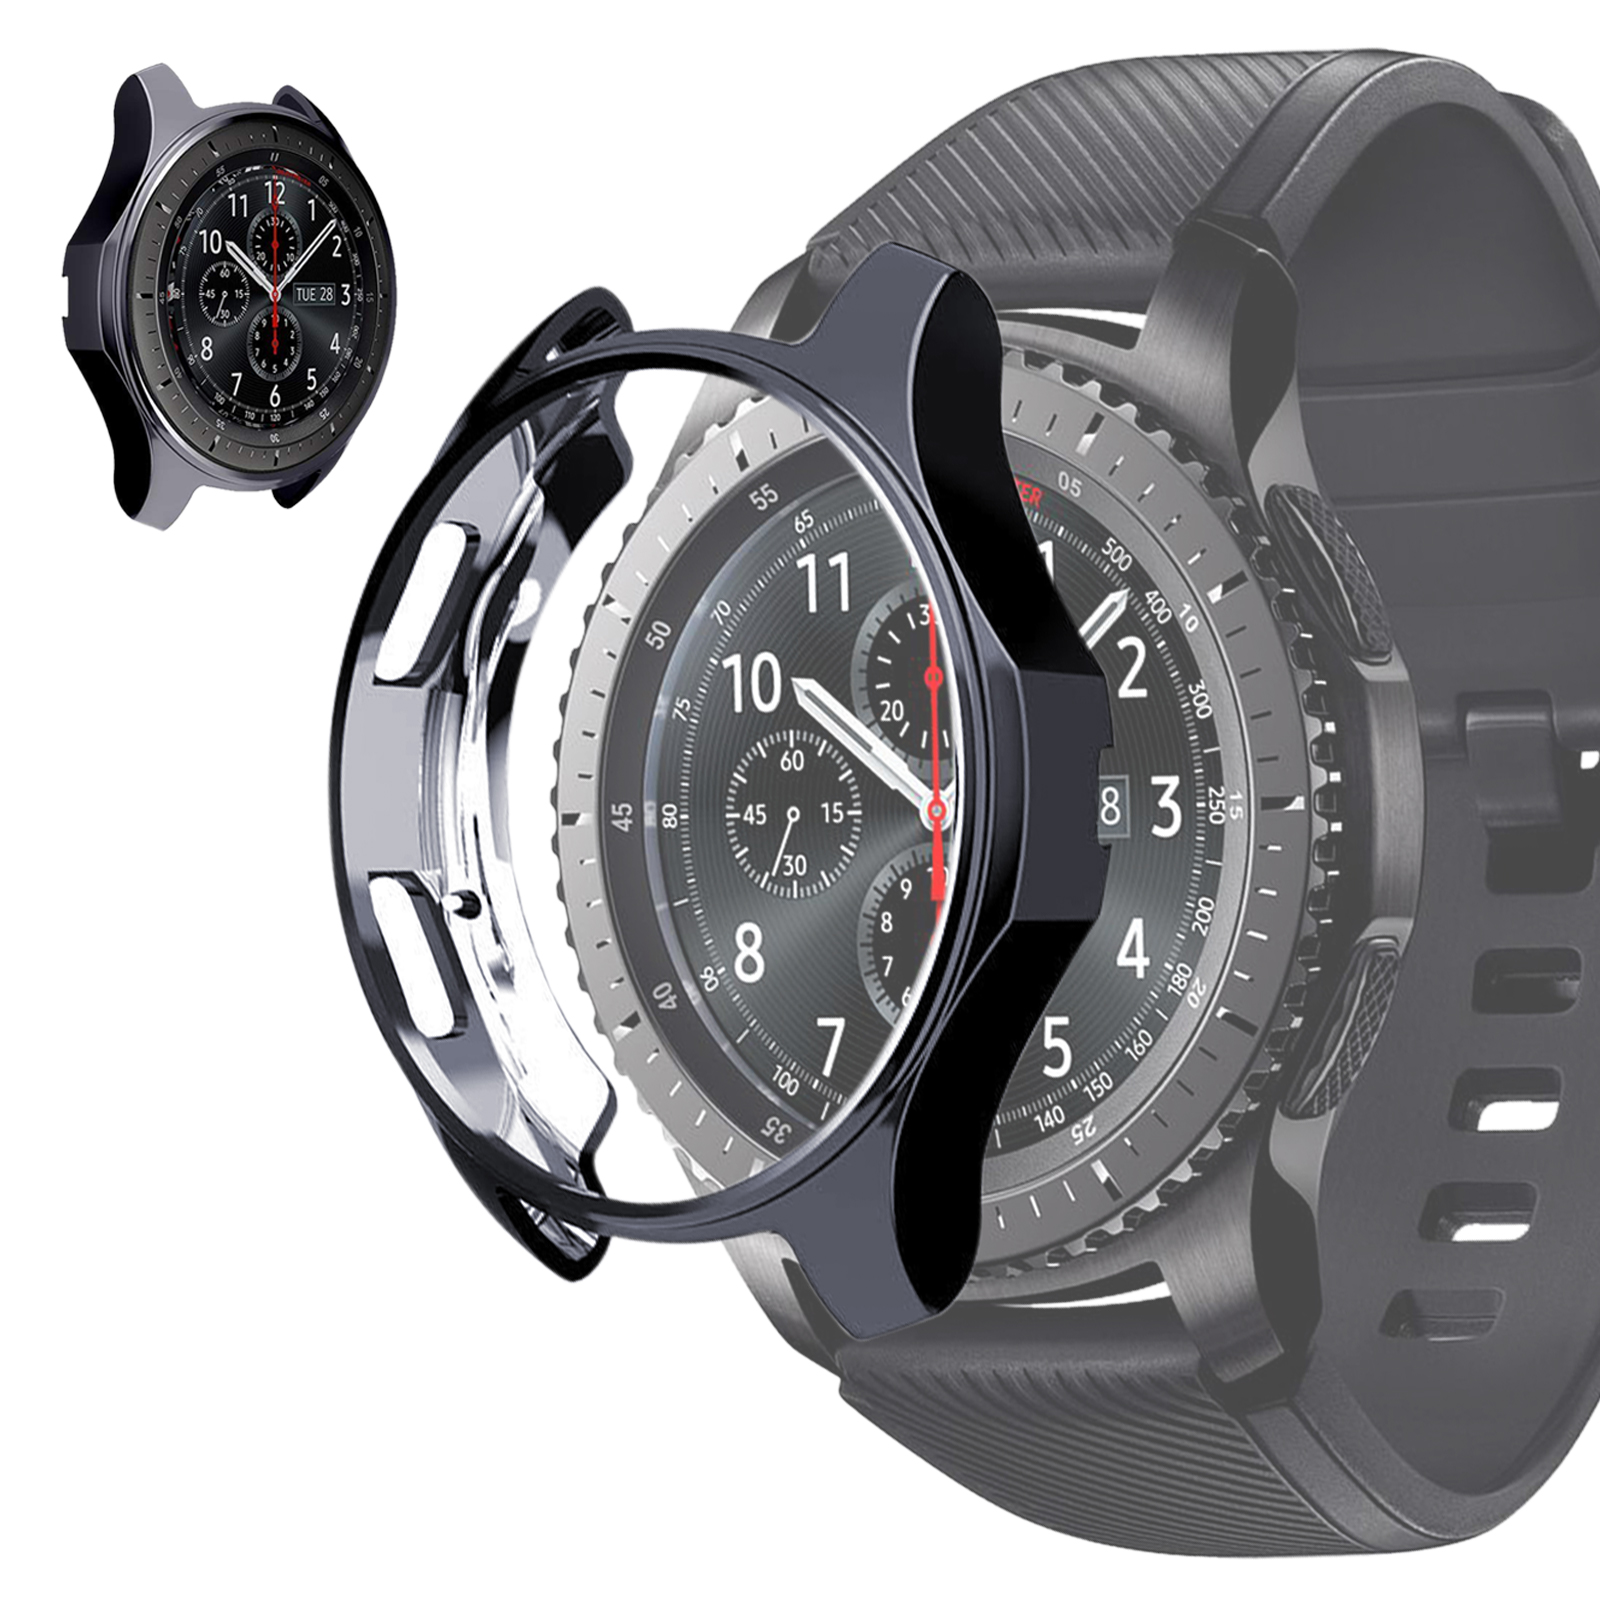 Soft-TPU-Slim-Smart-Watch-Case-Cover-For-Samsung-Gear-S3-Frontier-Galaxy-46mm thumbnail 11